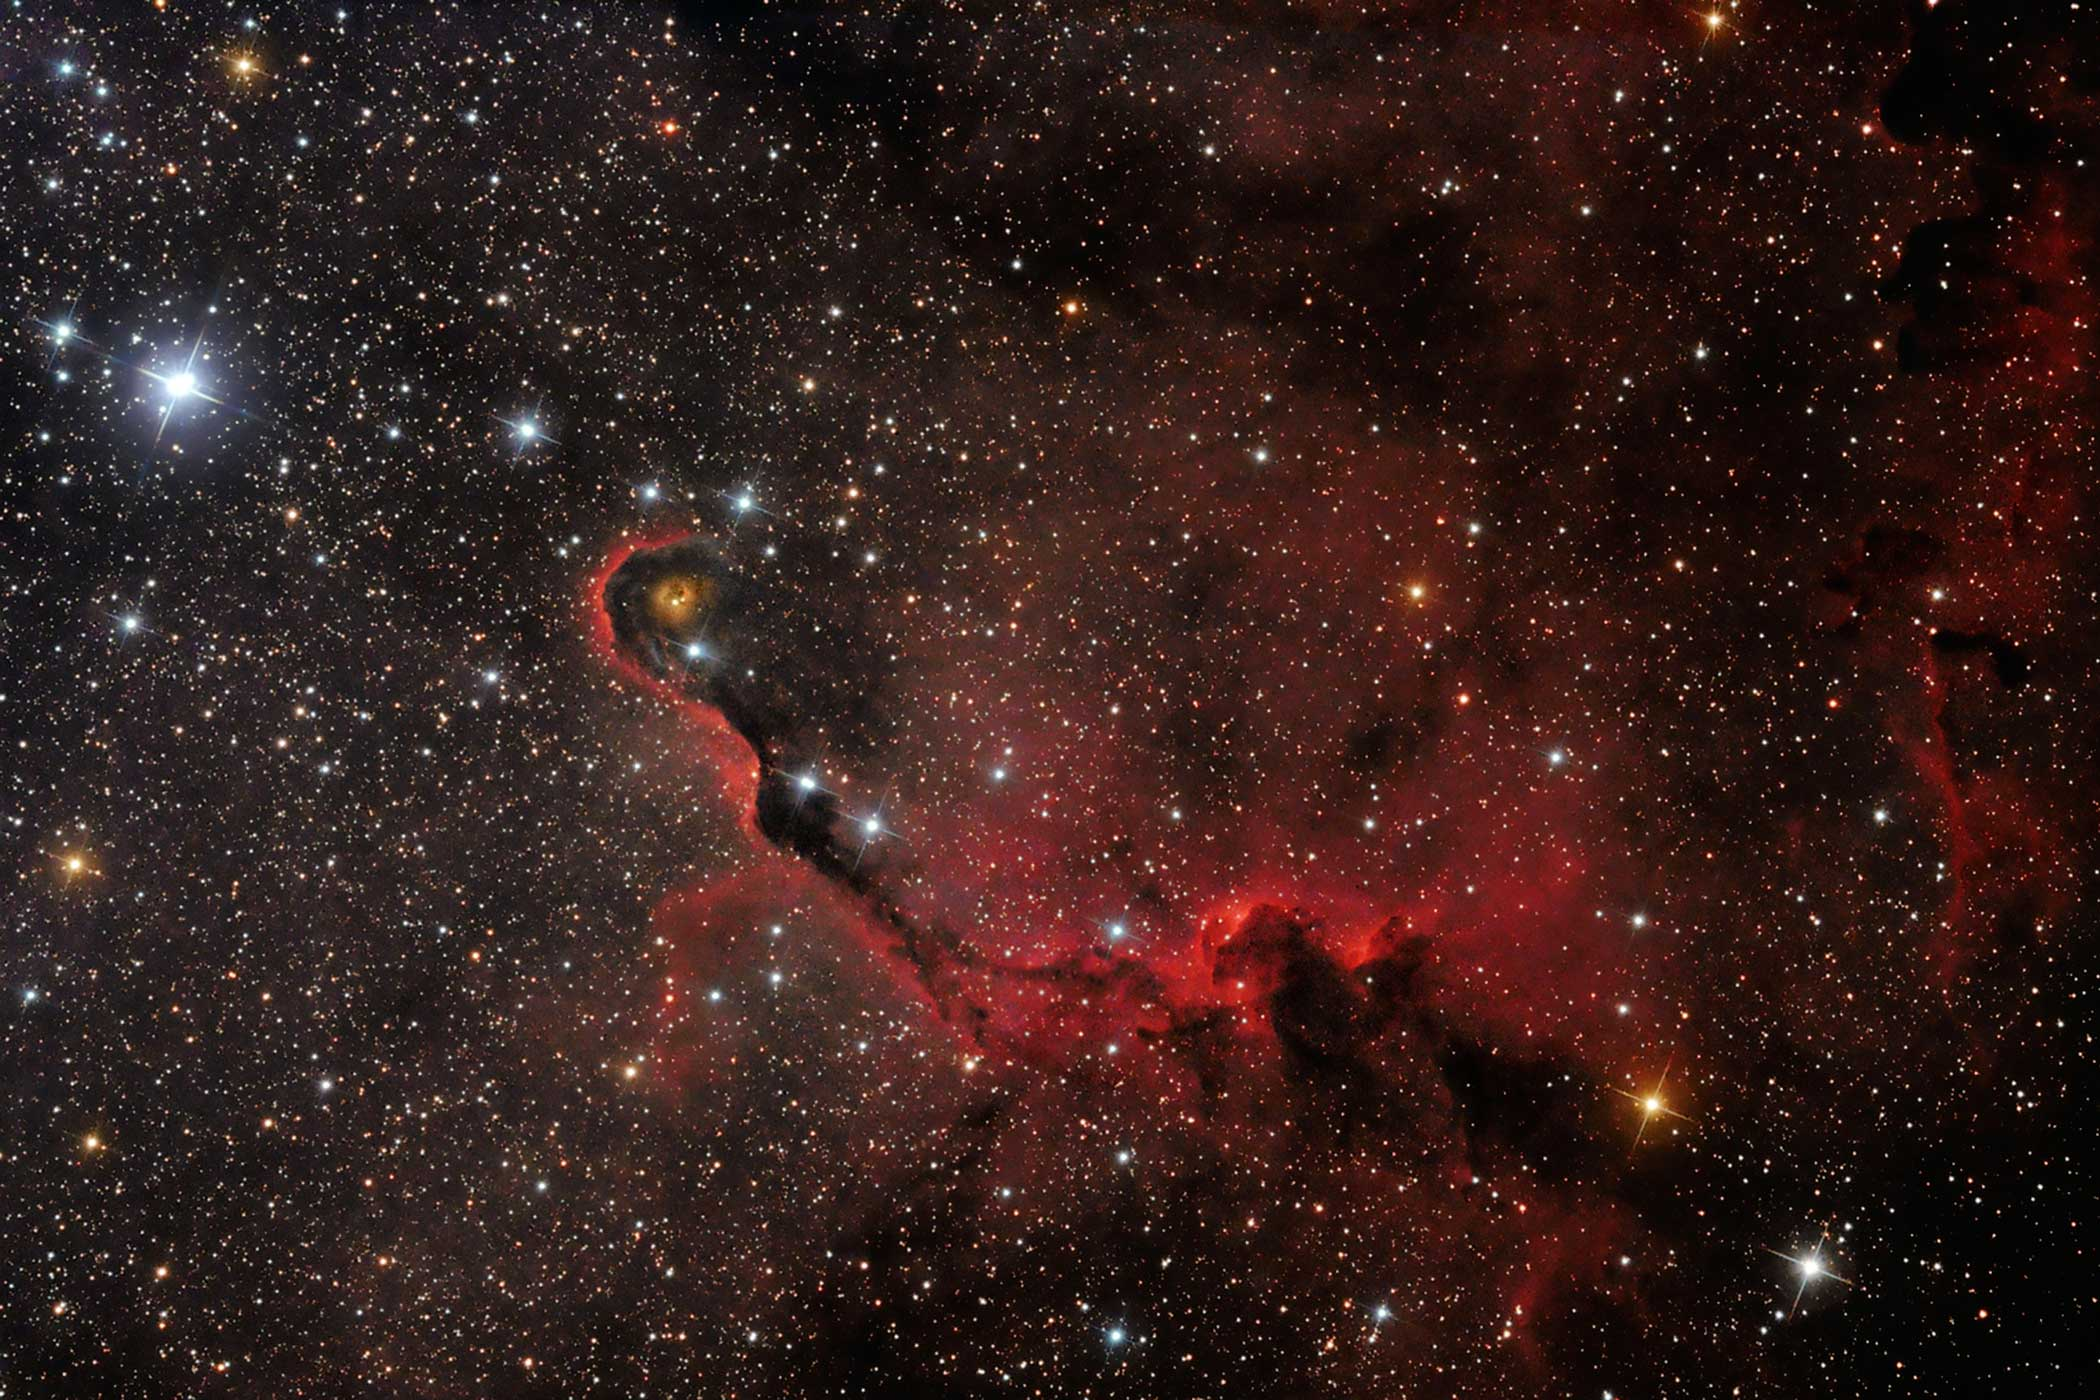 The Elephant's Trunk seems to uncoil from the dusty nebula on the right of the image, its tip curled around a cavity carved out by the radiation produced by young stars. Capturing a deep sky object like this takes skill and painstaking attention to detail and is a great achievement for a newcomer to astrophotography.